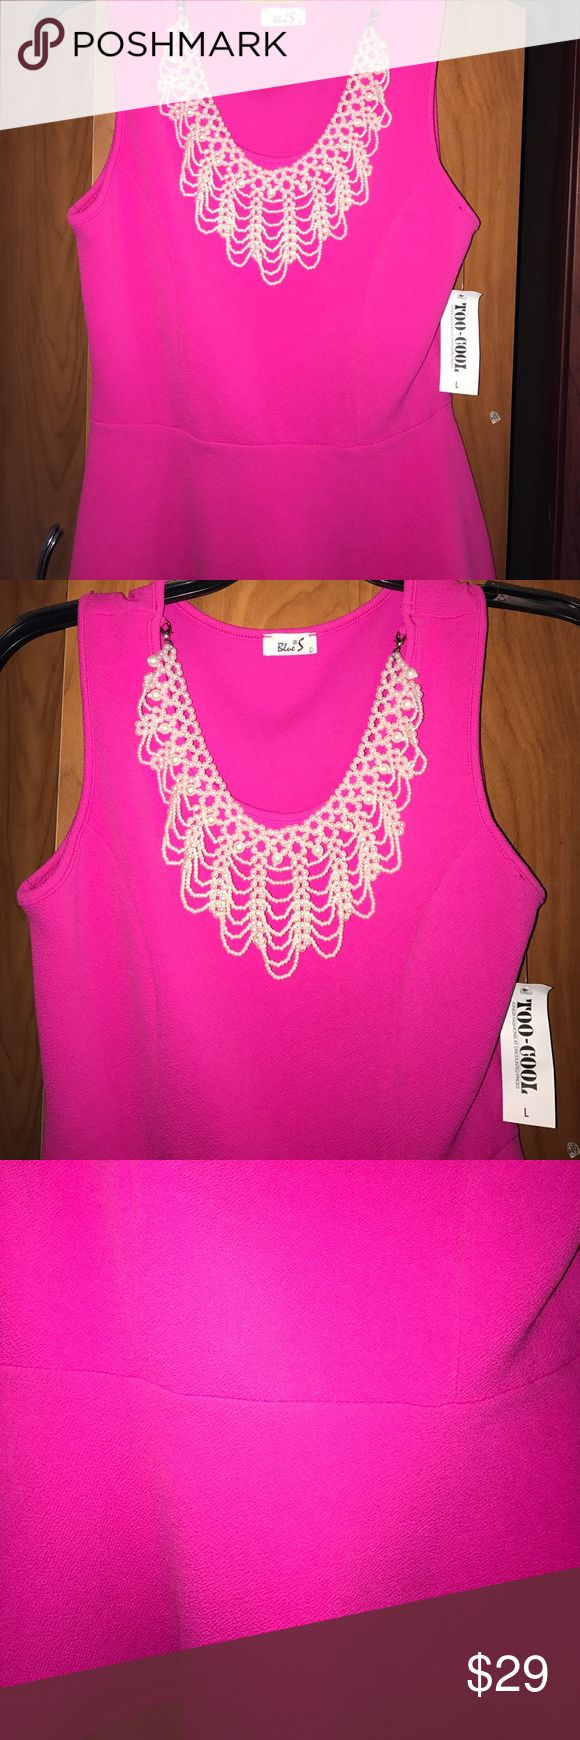 Hot pink peplum top with cute pearl necklace Adorable top with pearl necklace attached to it blue s Tops Tank Tops